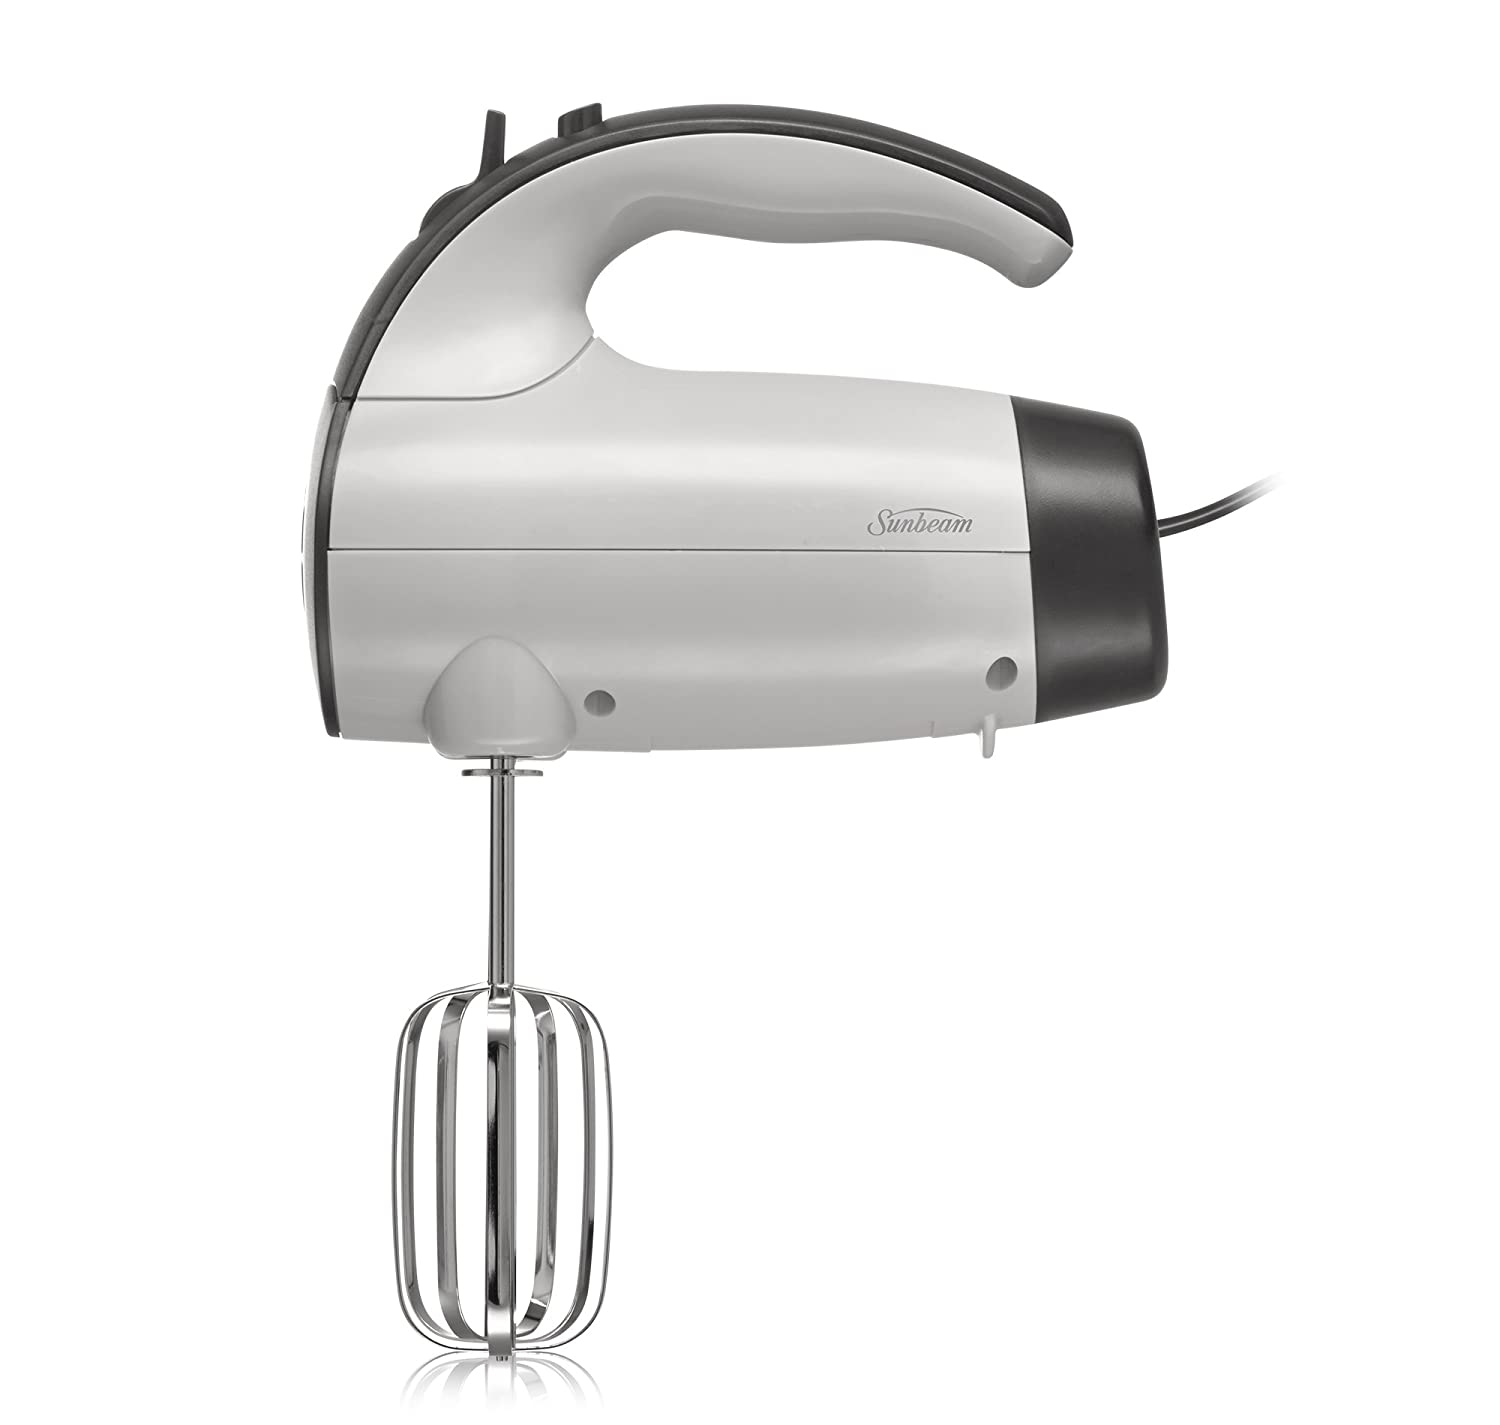 Sunbeam 2525 220-Watt 6-Speed Retractable Cord Hand Mixer, White/Grey - 002525-000-000